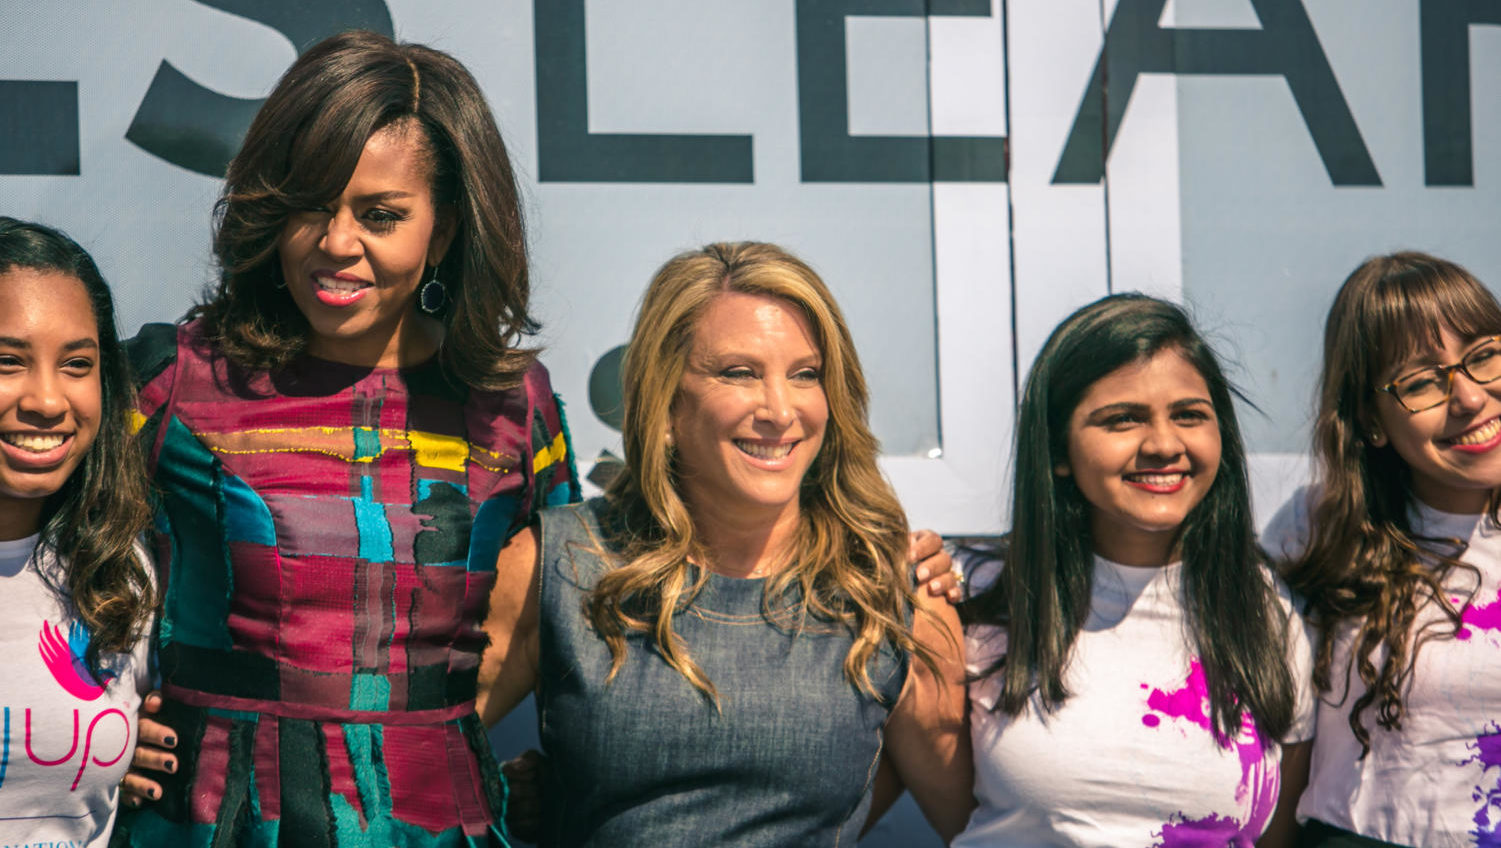 Shelley Zalis (center) had plenty of support while celebrating International Women's Day on the White House Lawn.